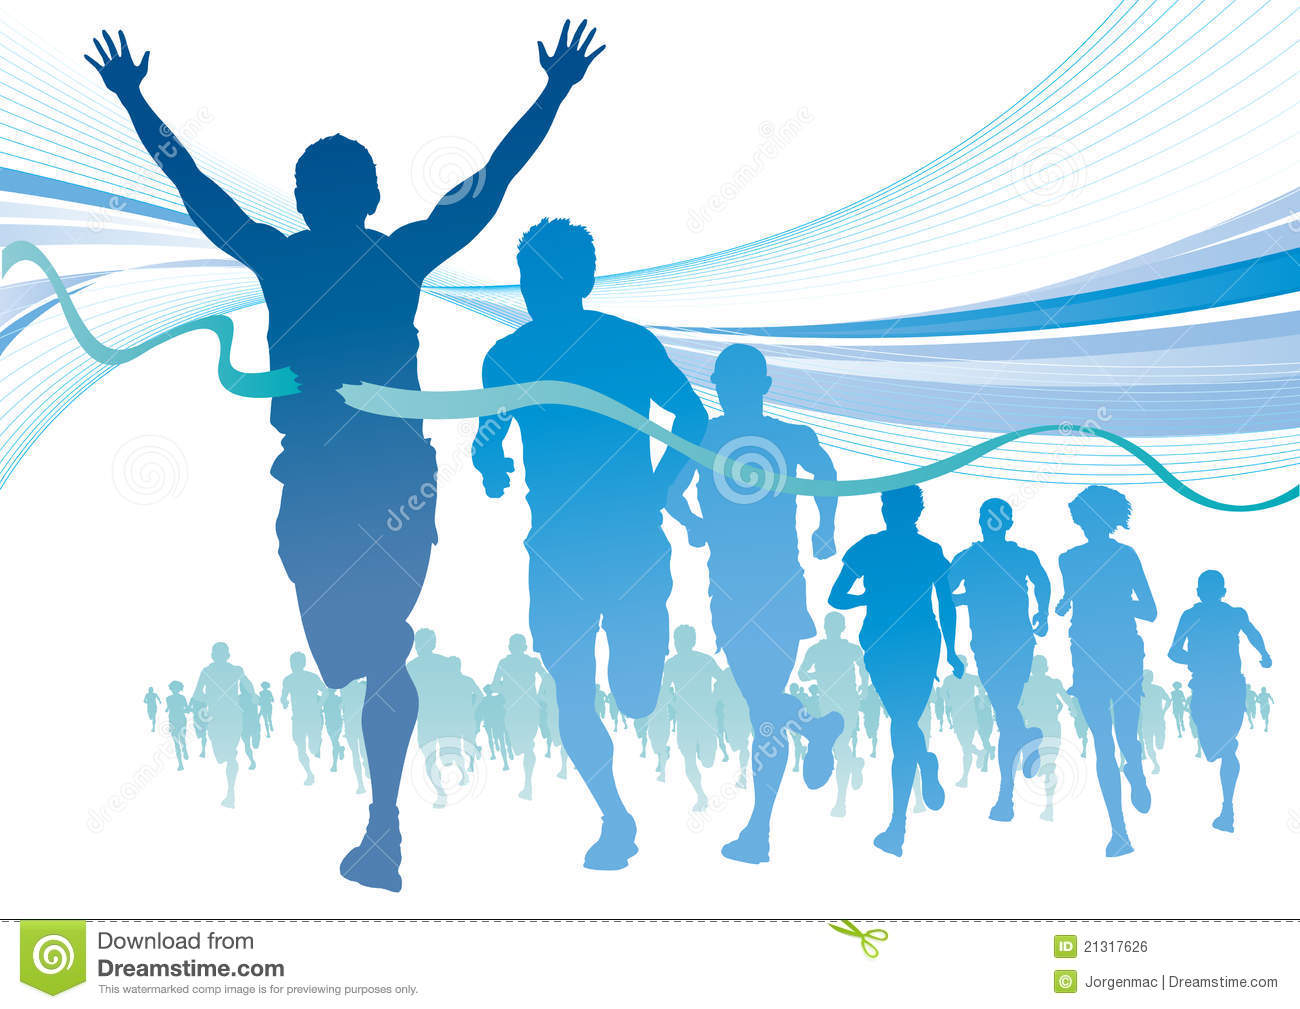 Sport clipart marathon runner - Pencil and in color sport clipart ...